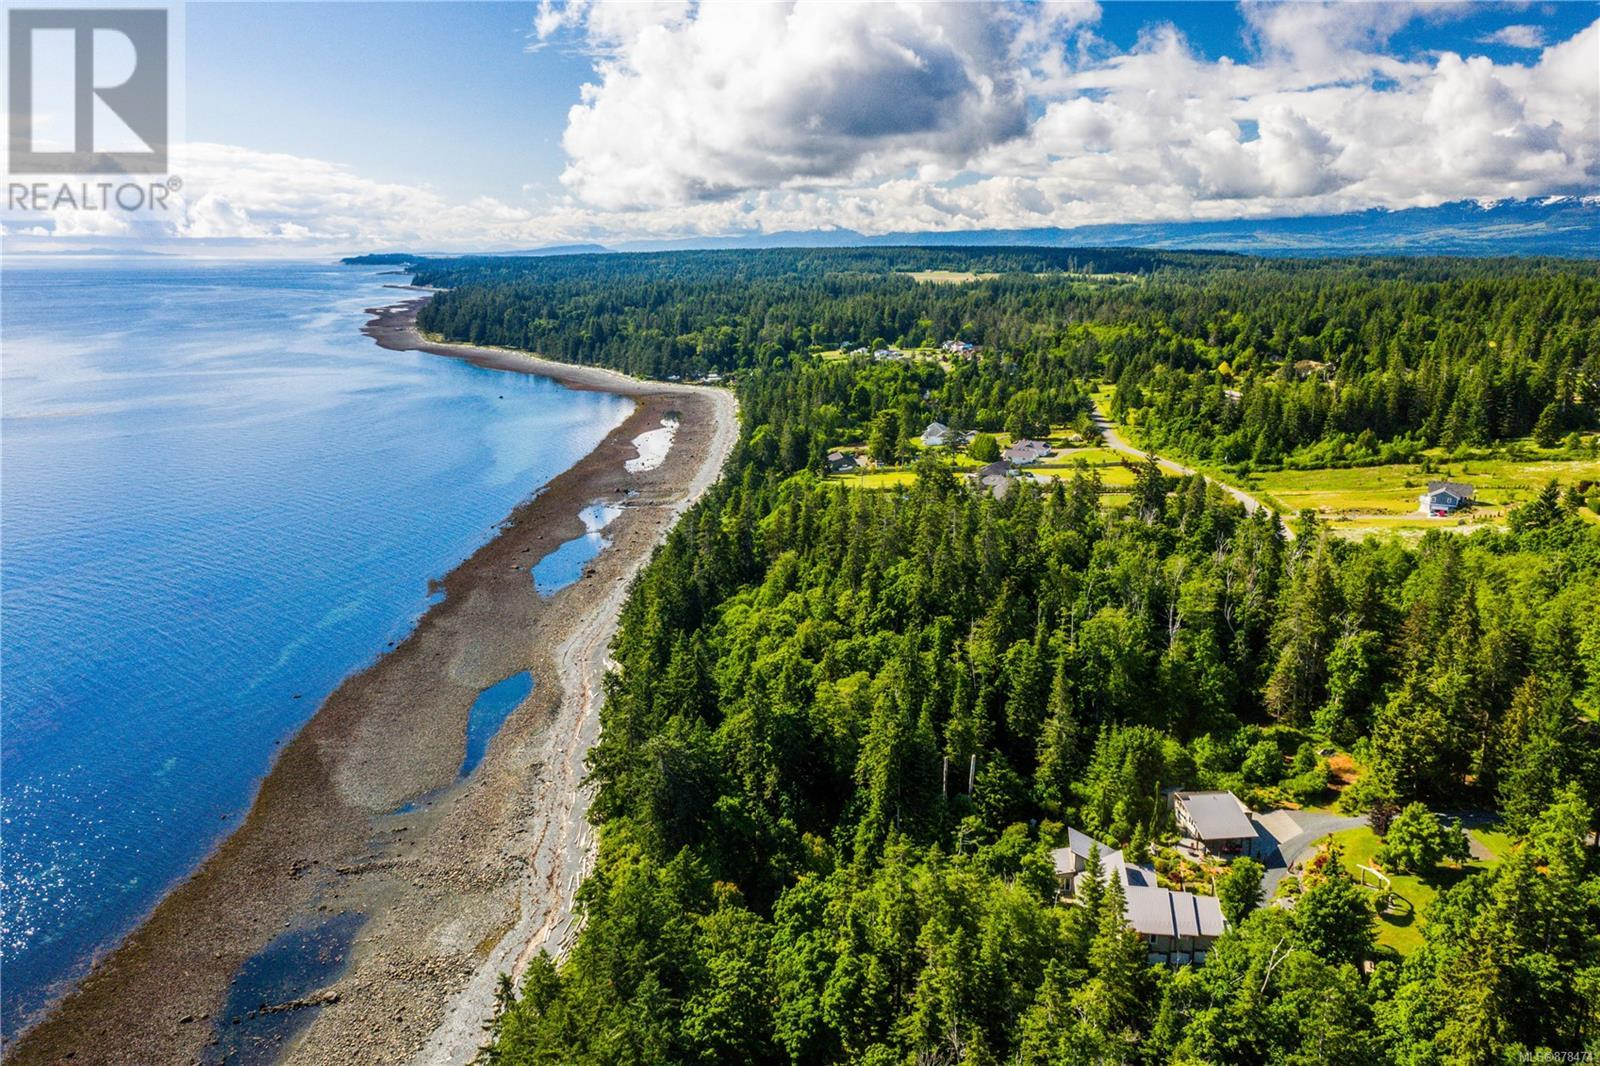 MLS® #878474 - Courtenay For sale Image #2